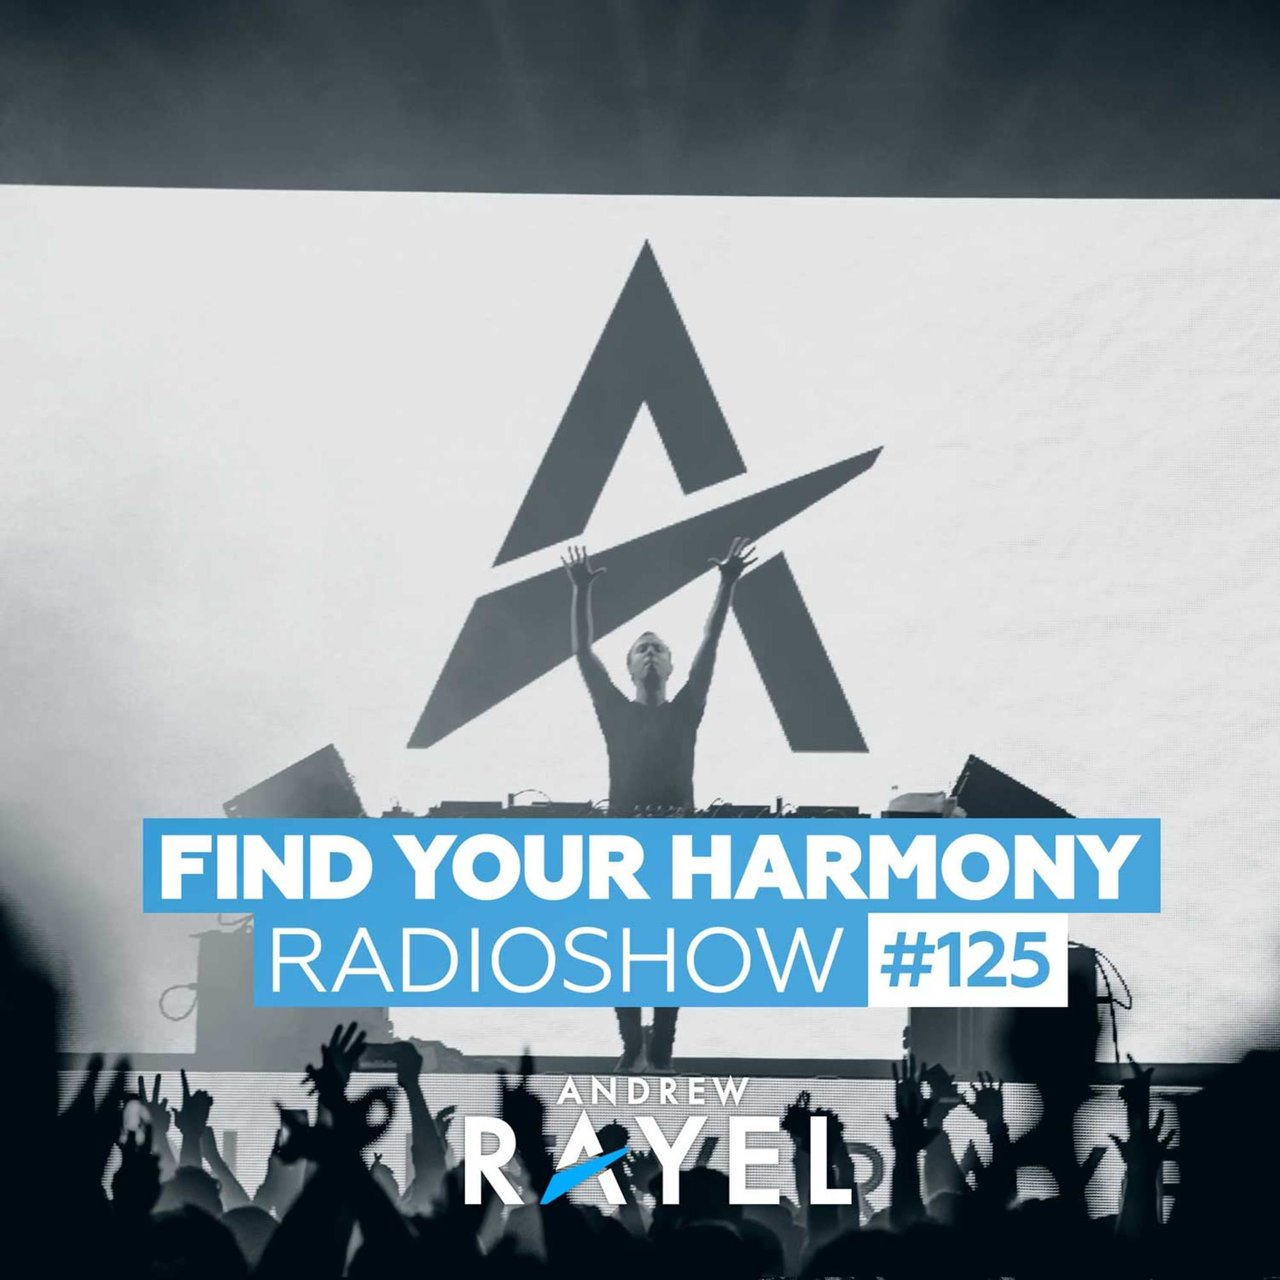 Find Your Harmony Radioshow #125